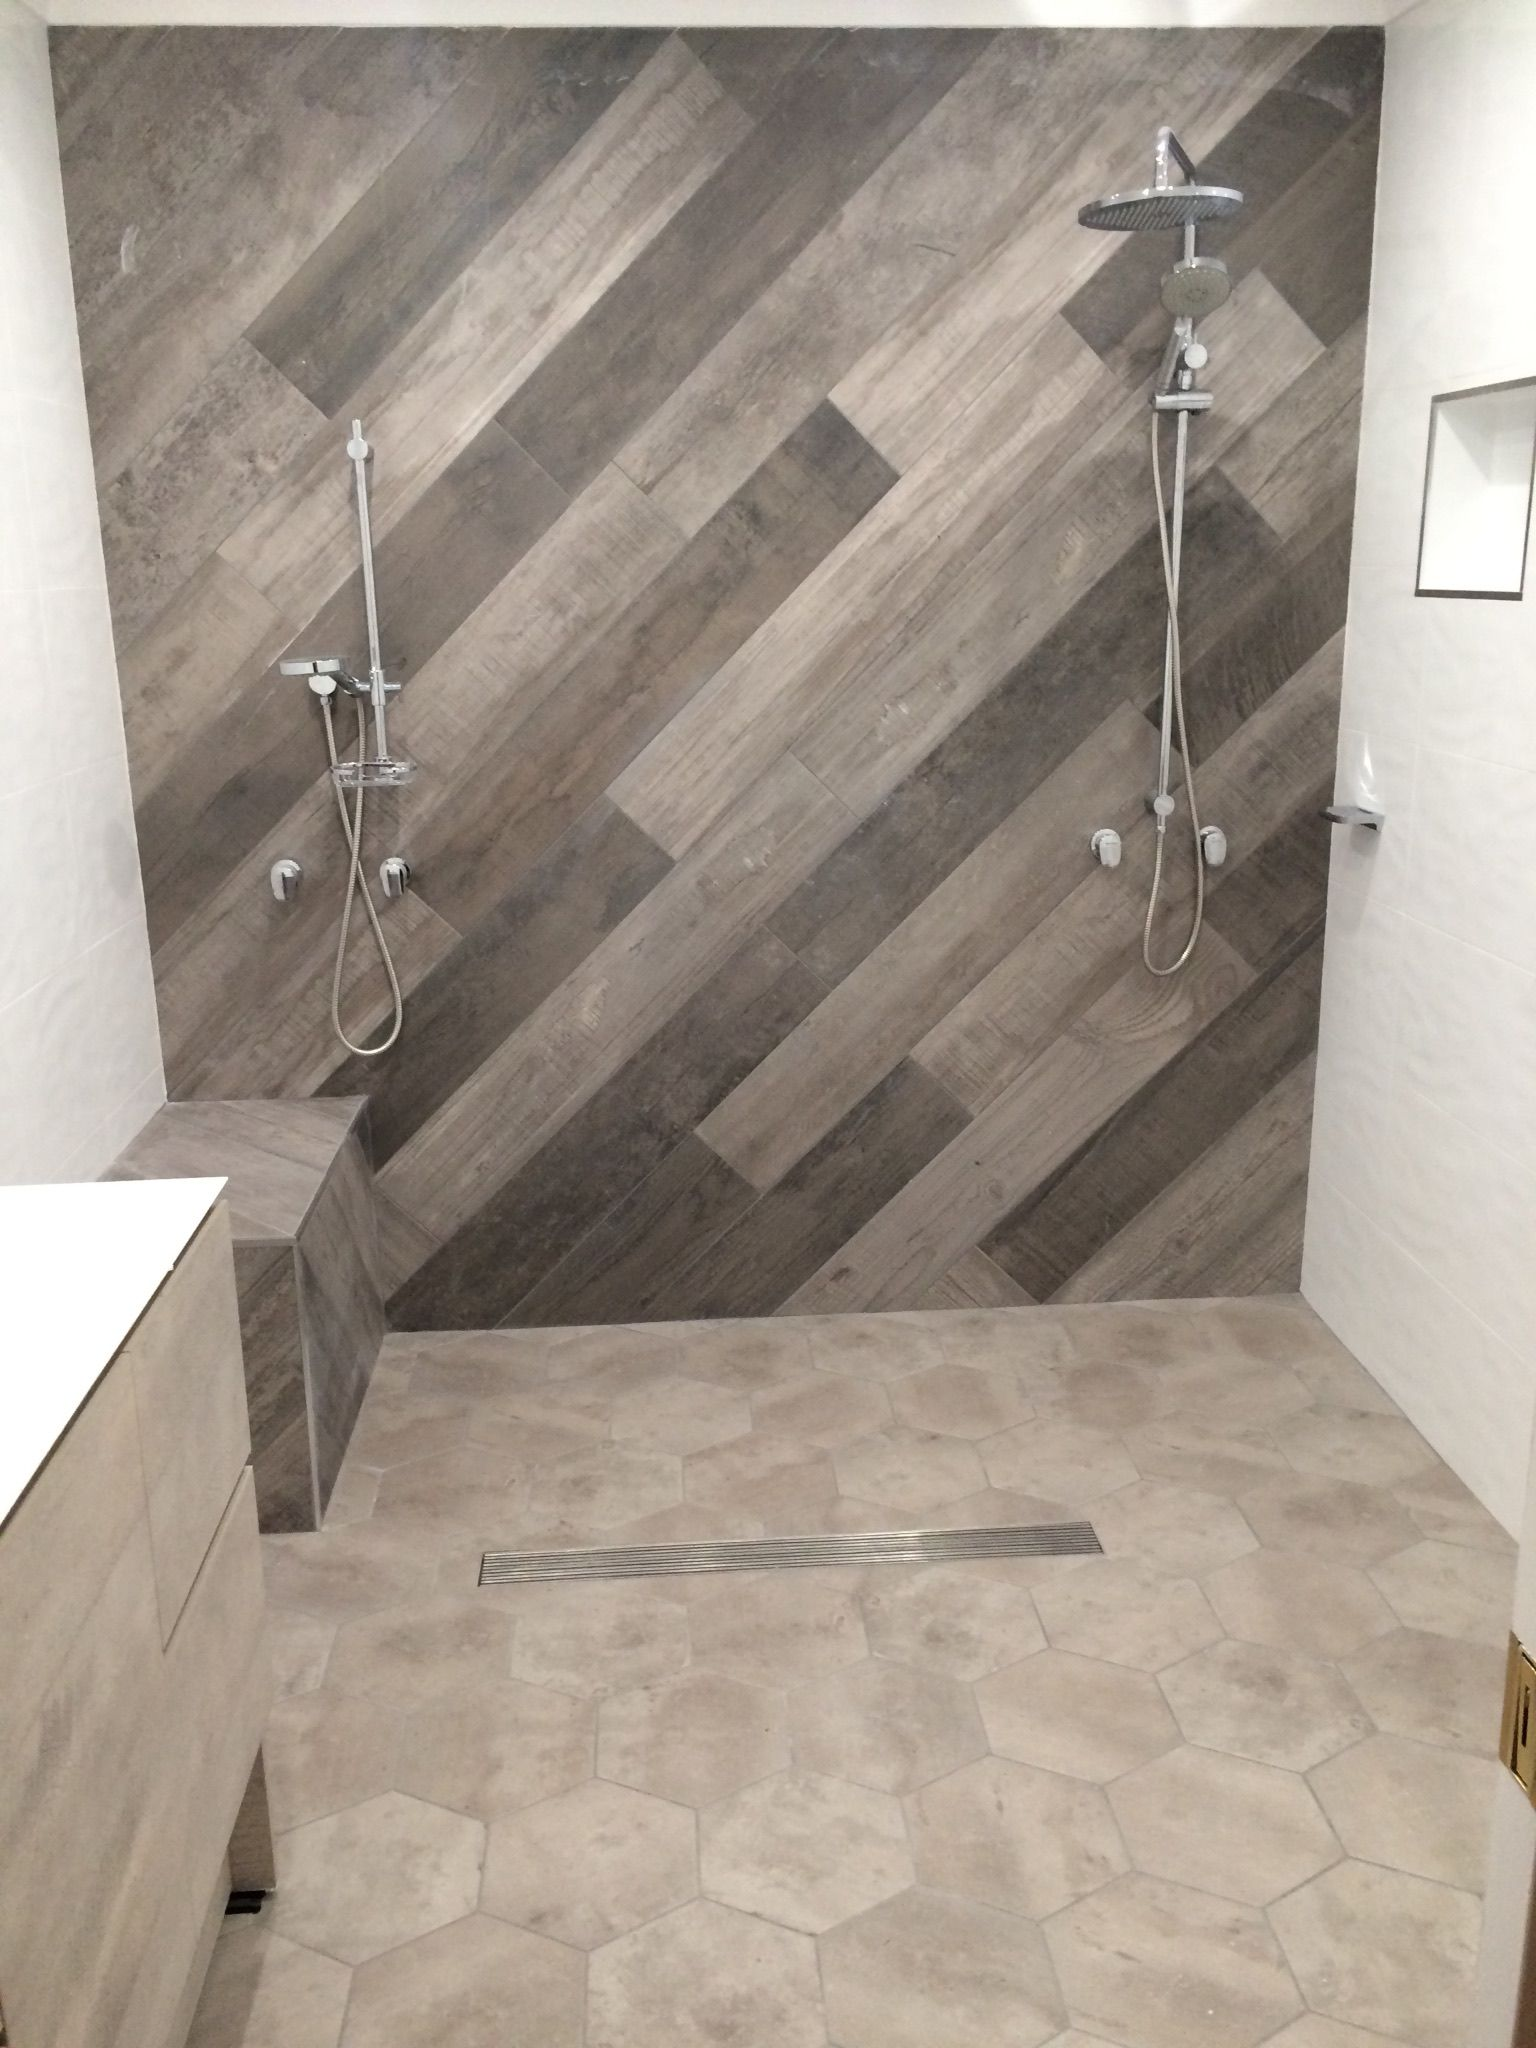 Feature wall timber look tiles walls white waves wall tile feature wall timber look tiles walls white waves wall tile floor concrete hexagon dailygadgetfo Images